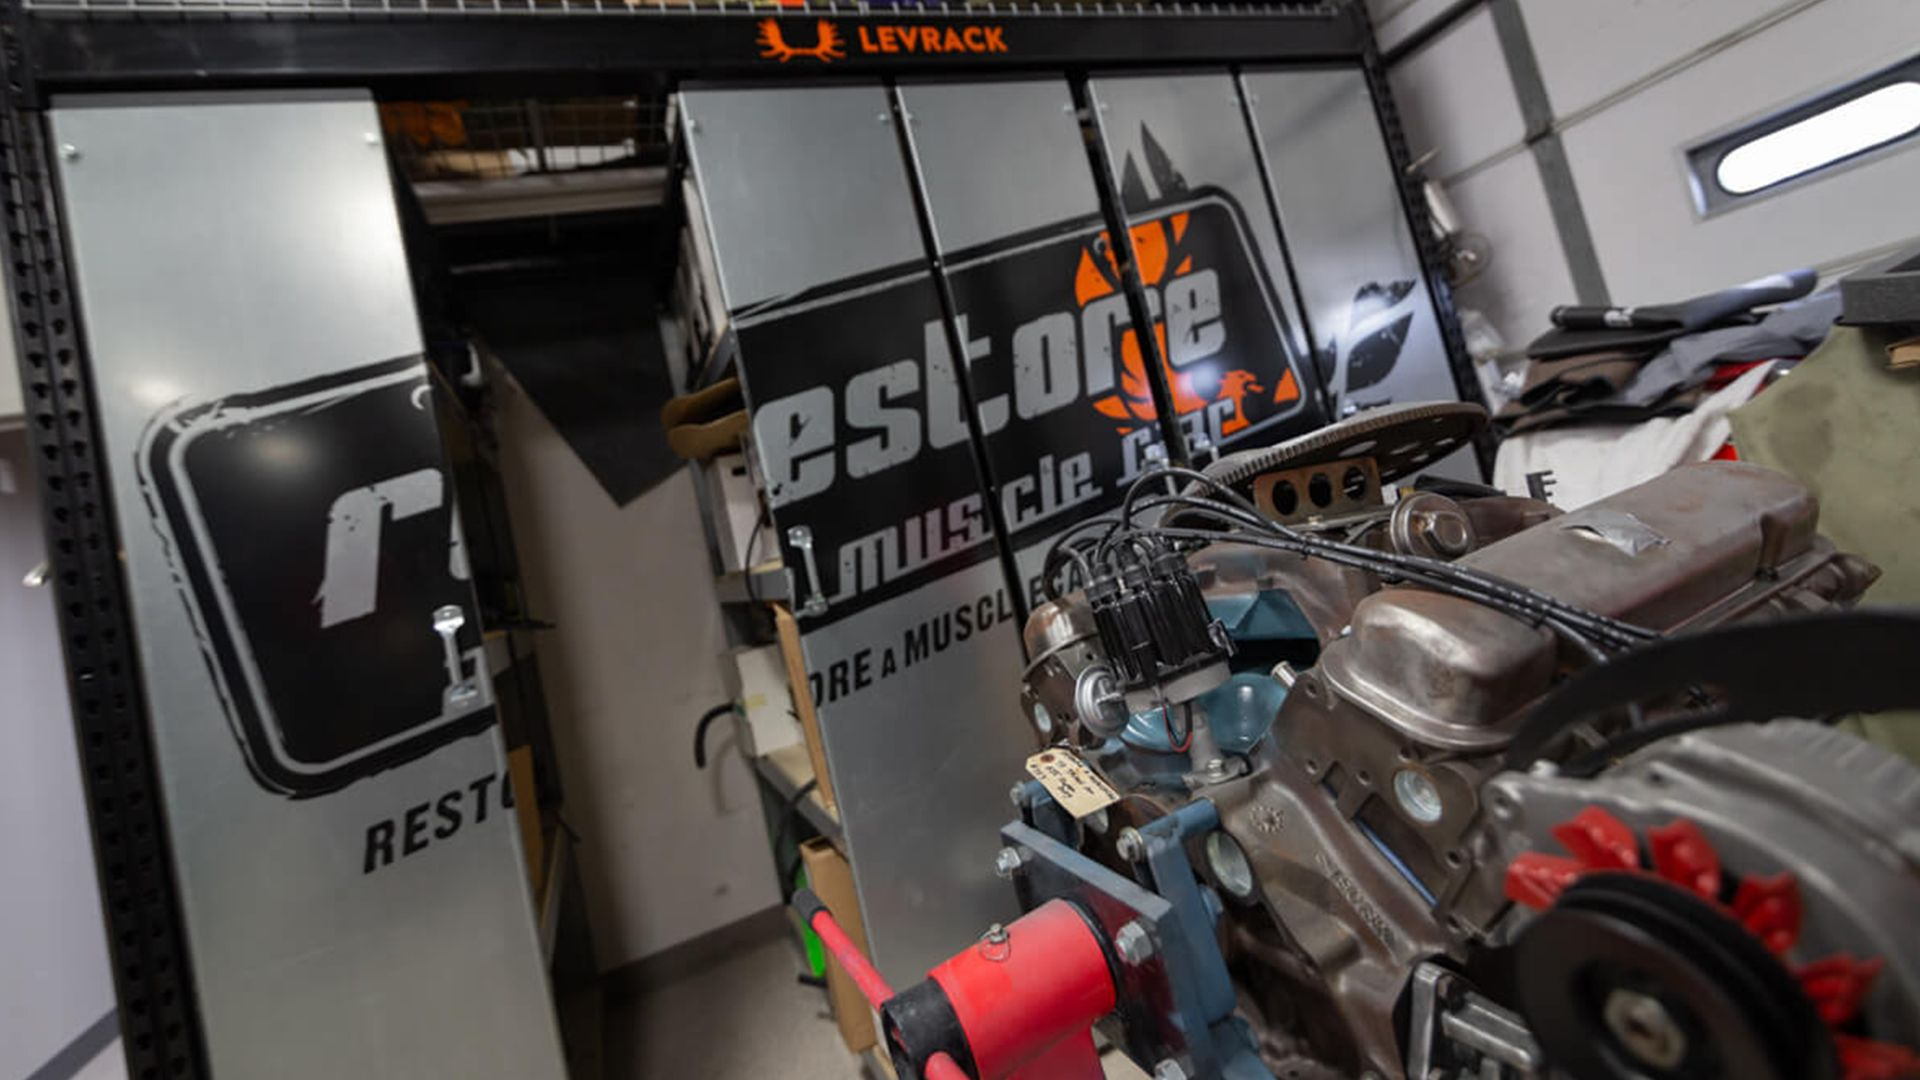 Levrack featured with Restore A Muscle Car